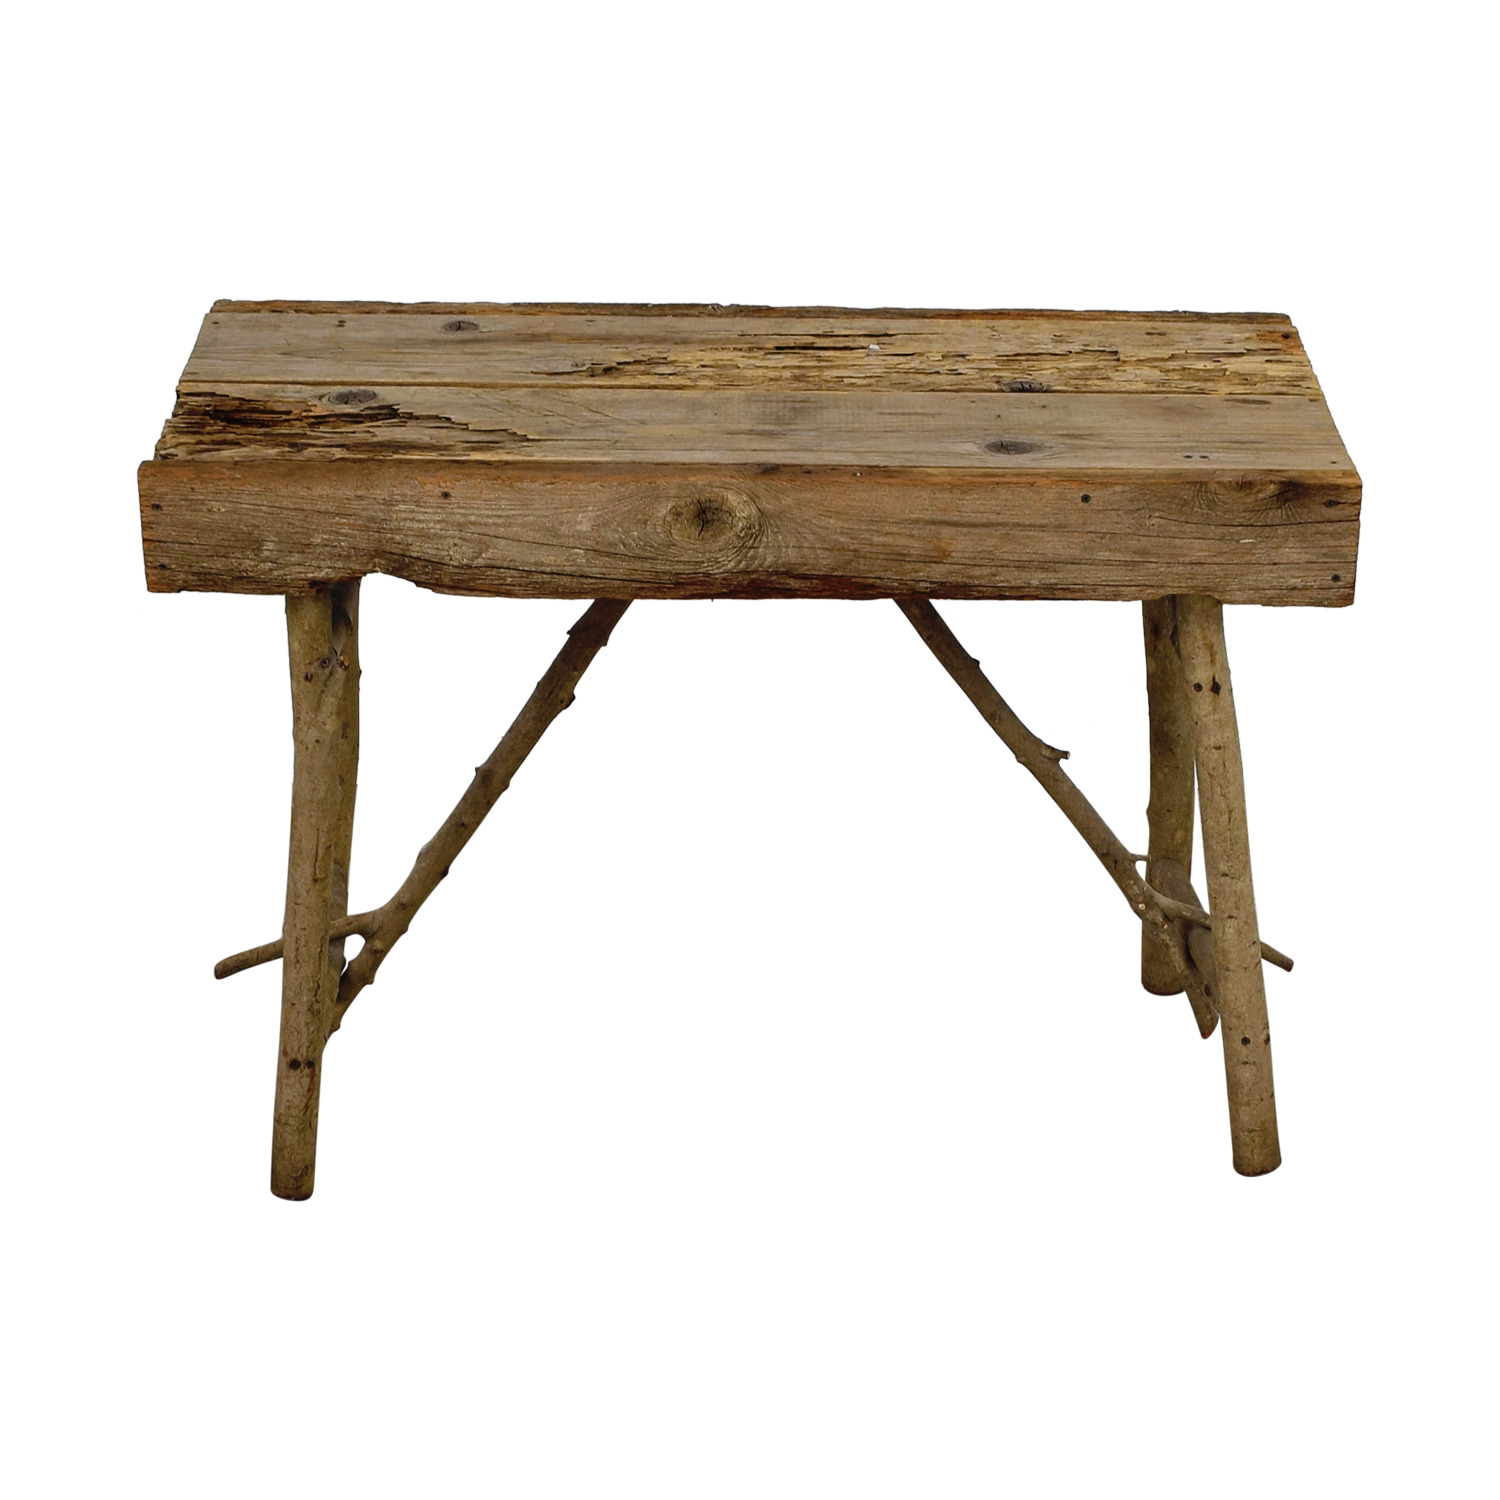 Pier 1 Imports Pier 1 Imports Rustic Wood TV Table GREY/Tan Wood